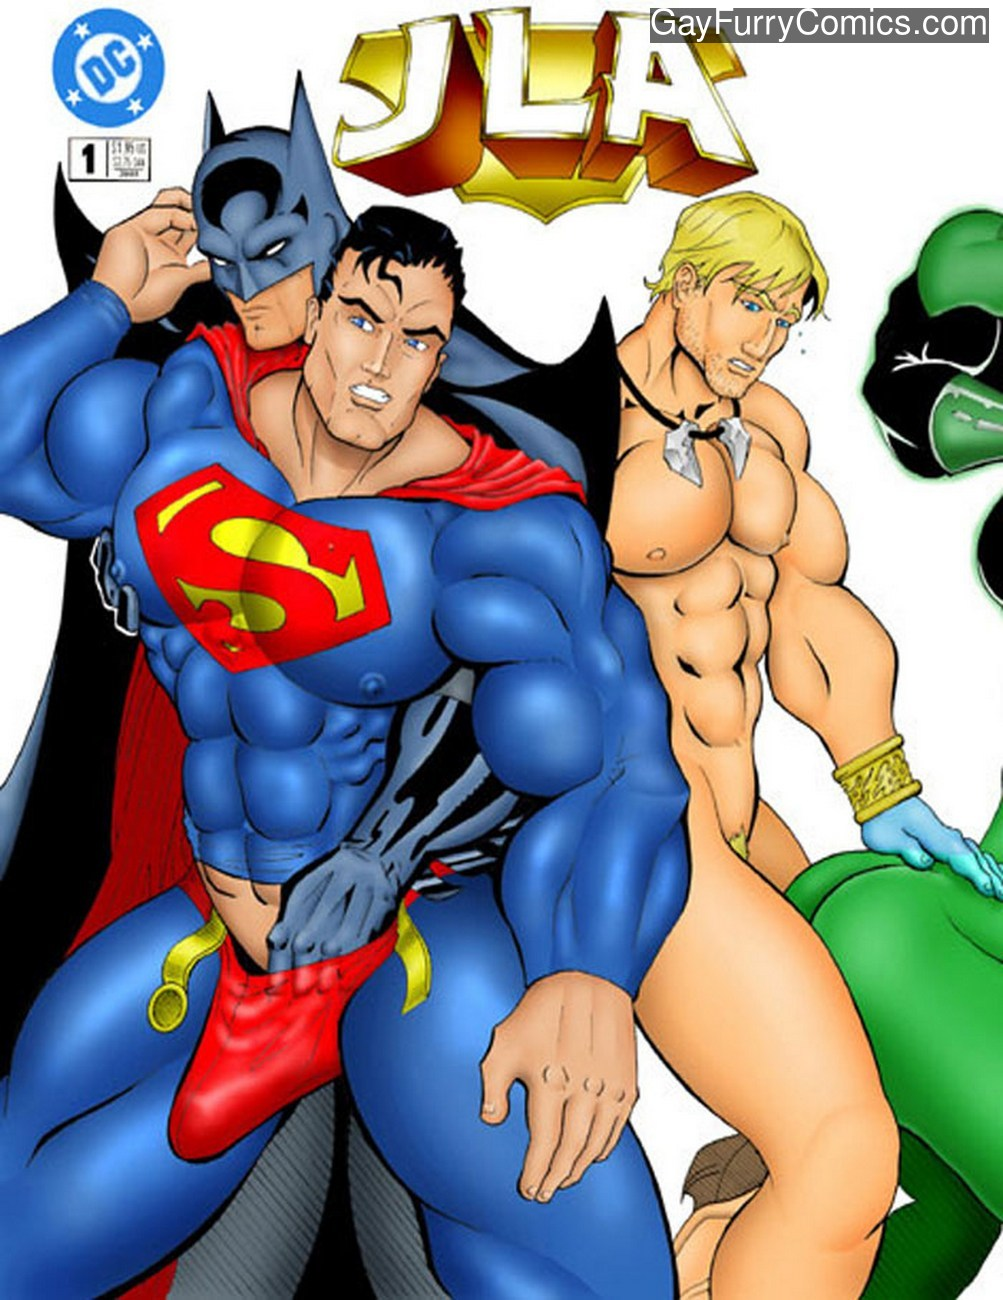 JLA gay furry comic